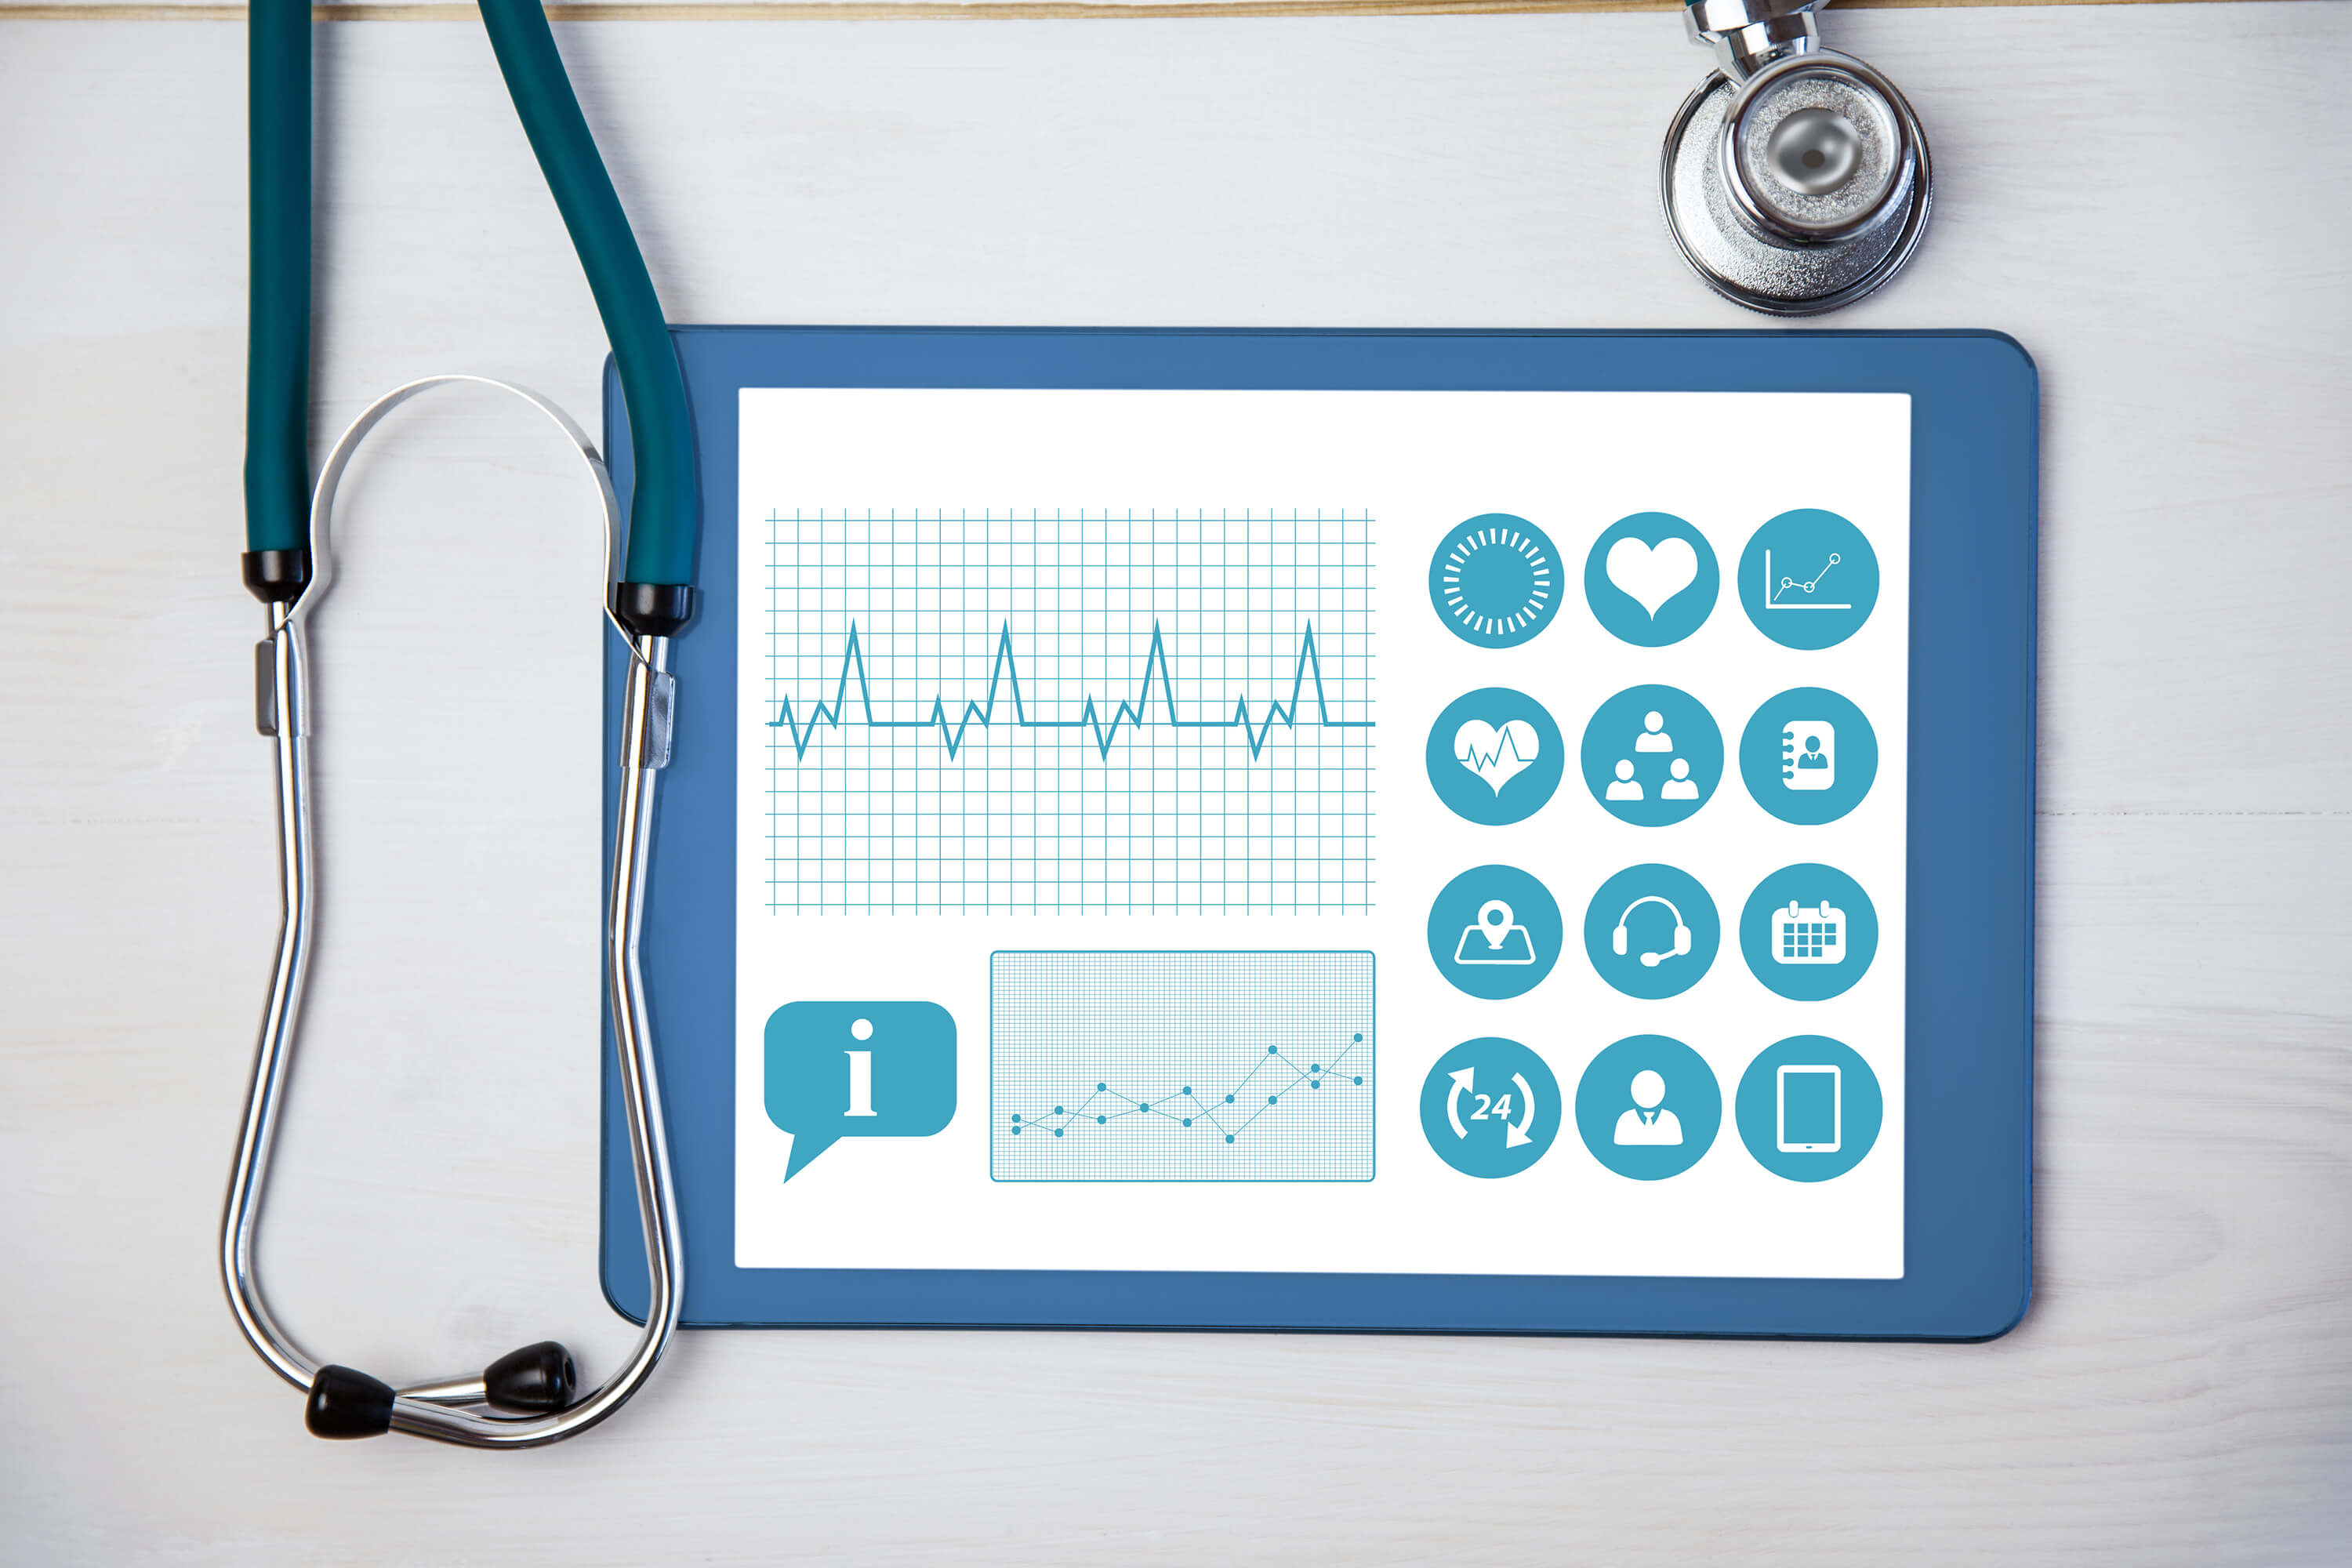 IoT solutions in healthcare